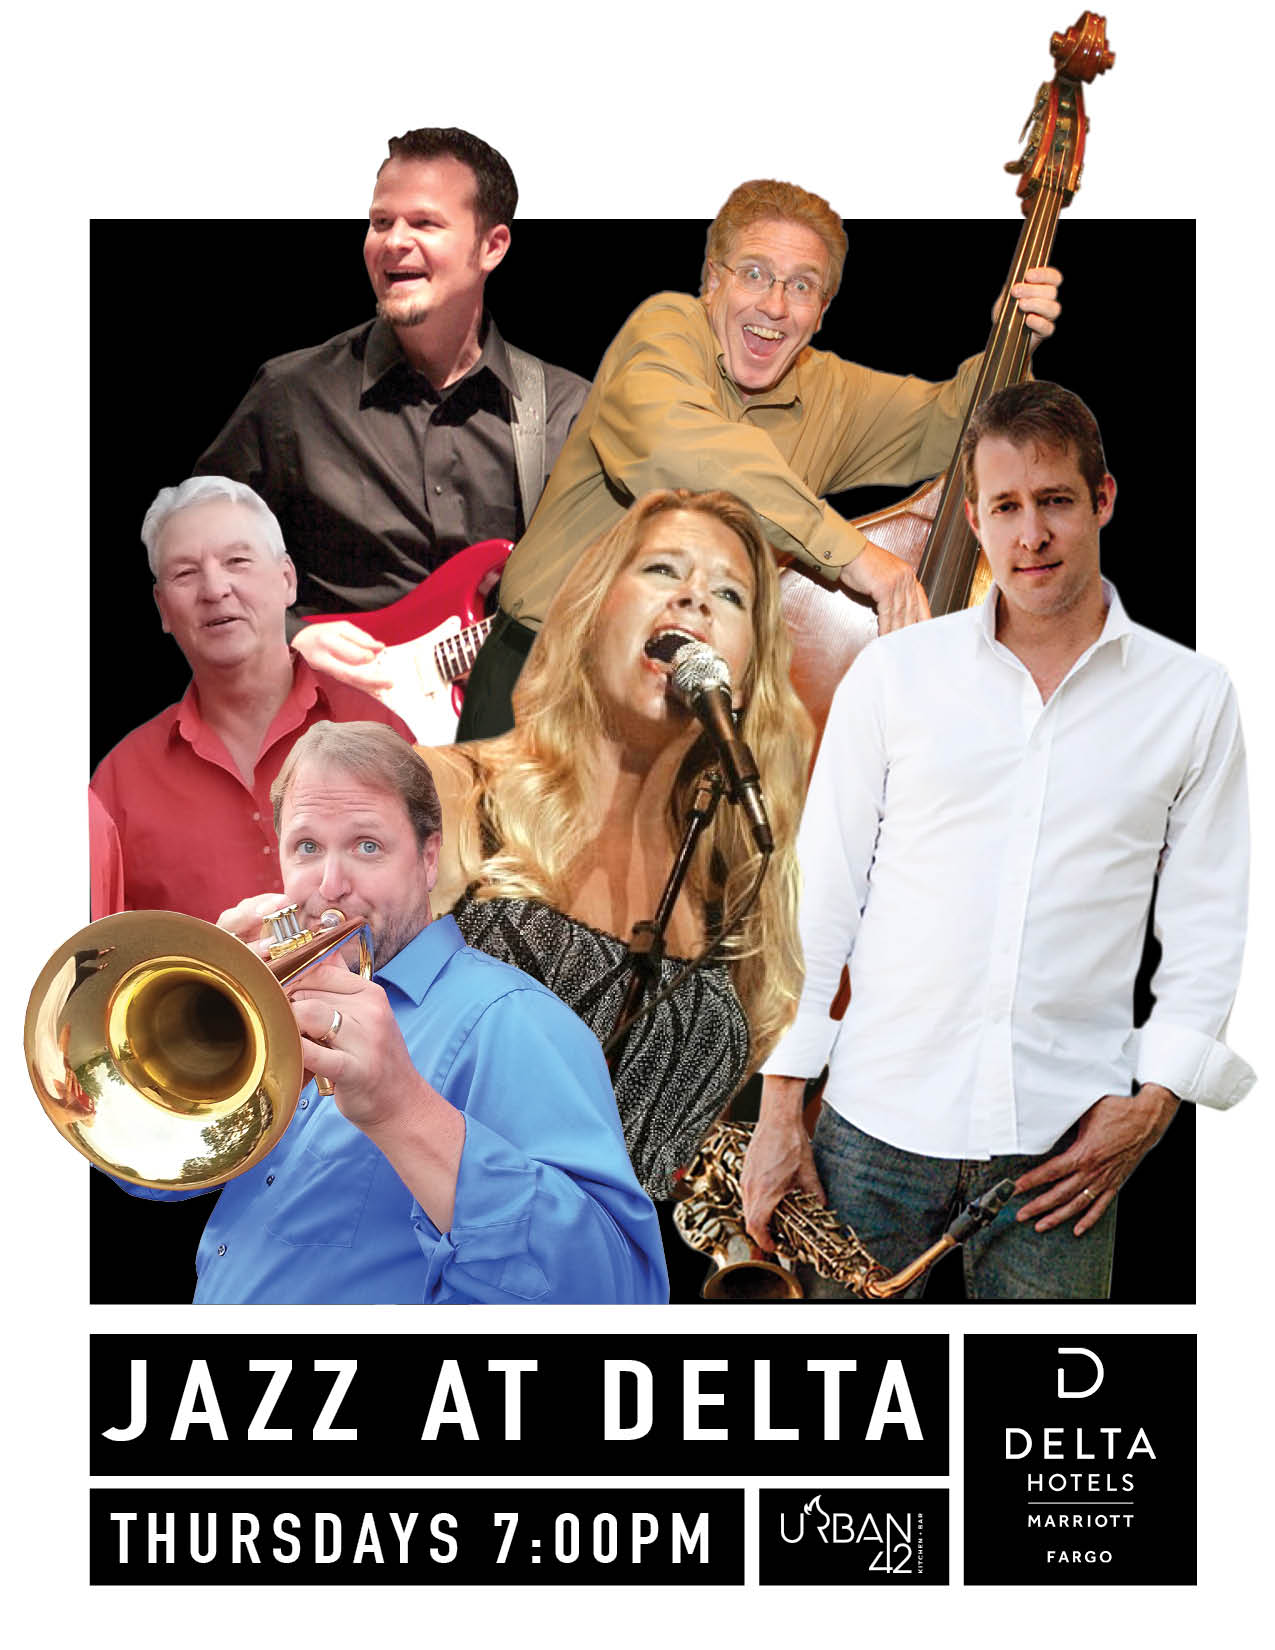 Jazz at Delta Color6